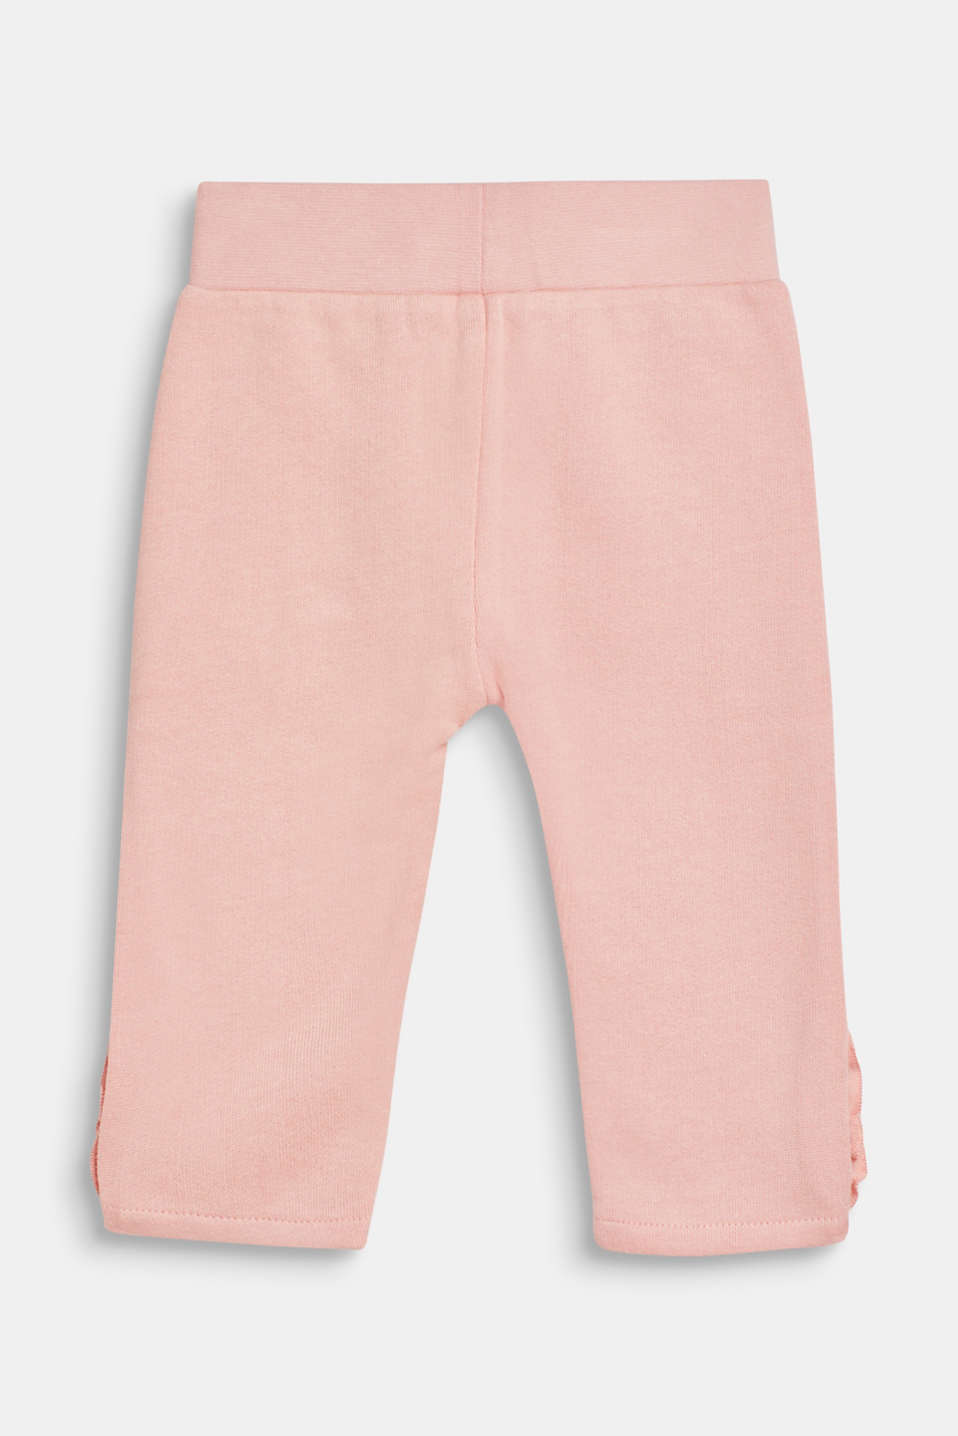 Pants knitted, LCLIGHT BLUSH, detail image number 1